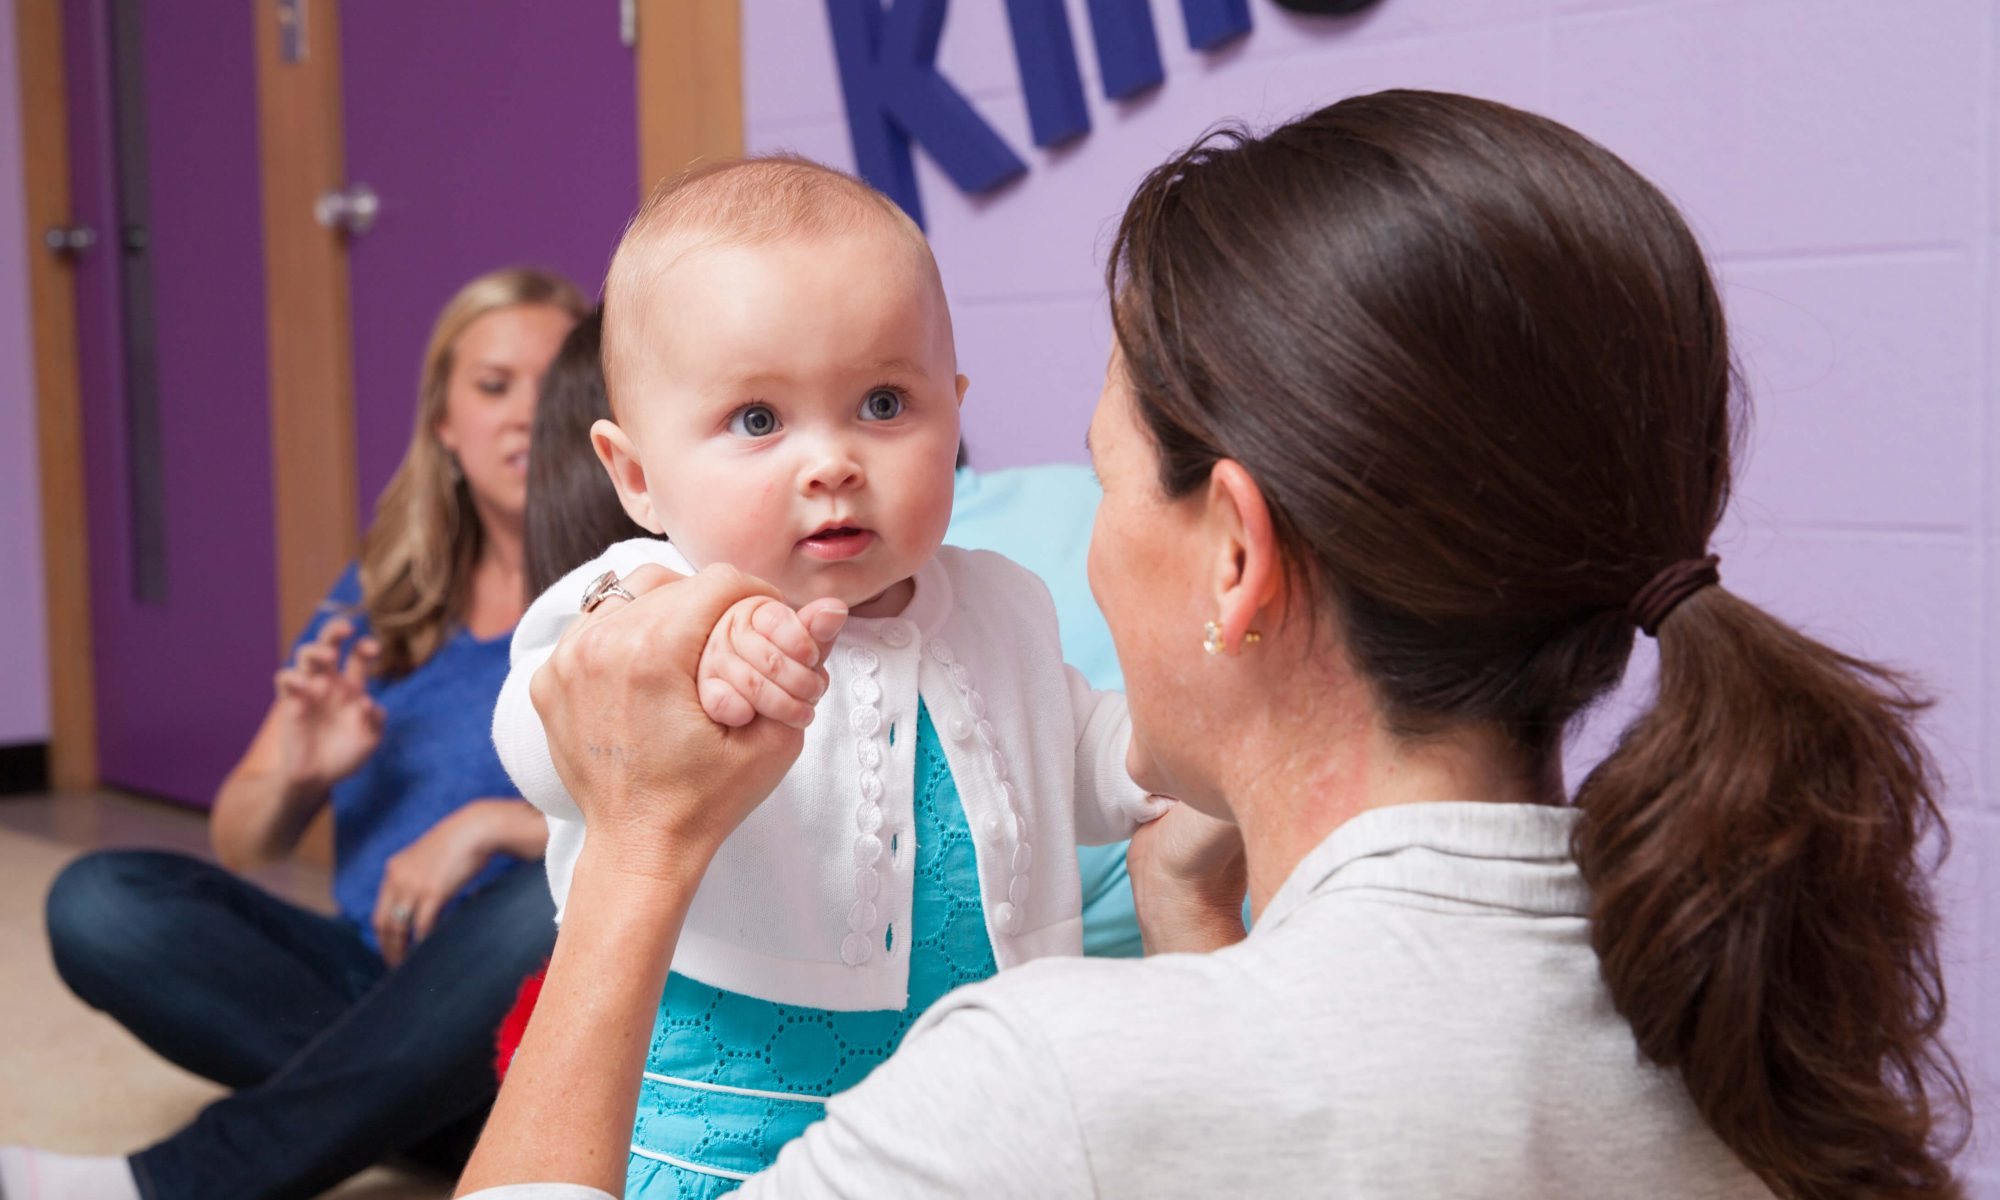 Babies cry in regional accents'